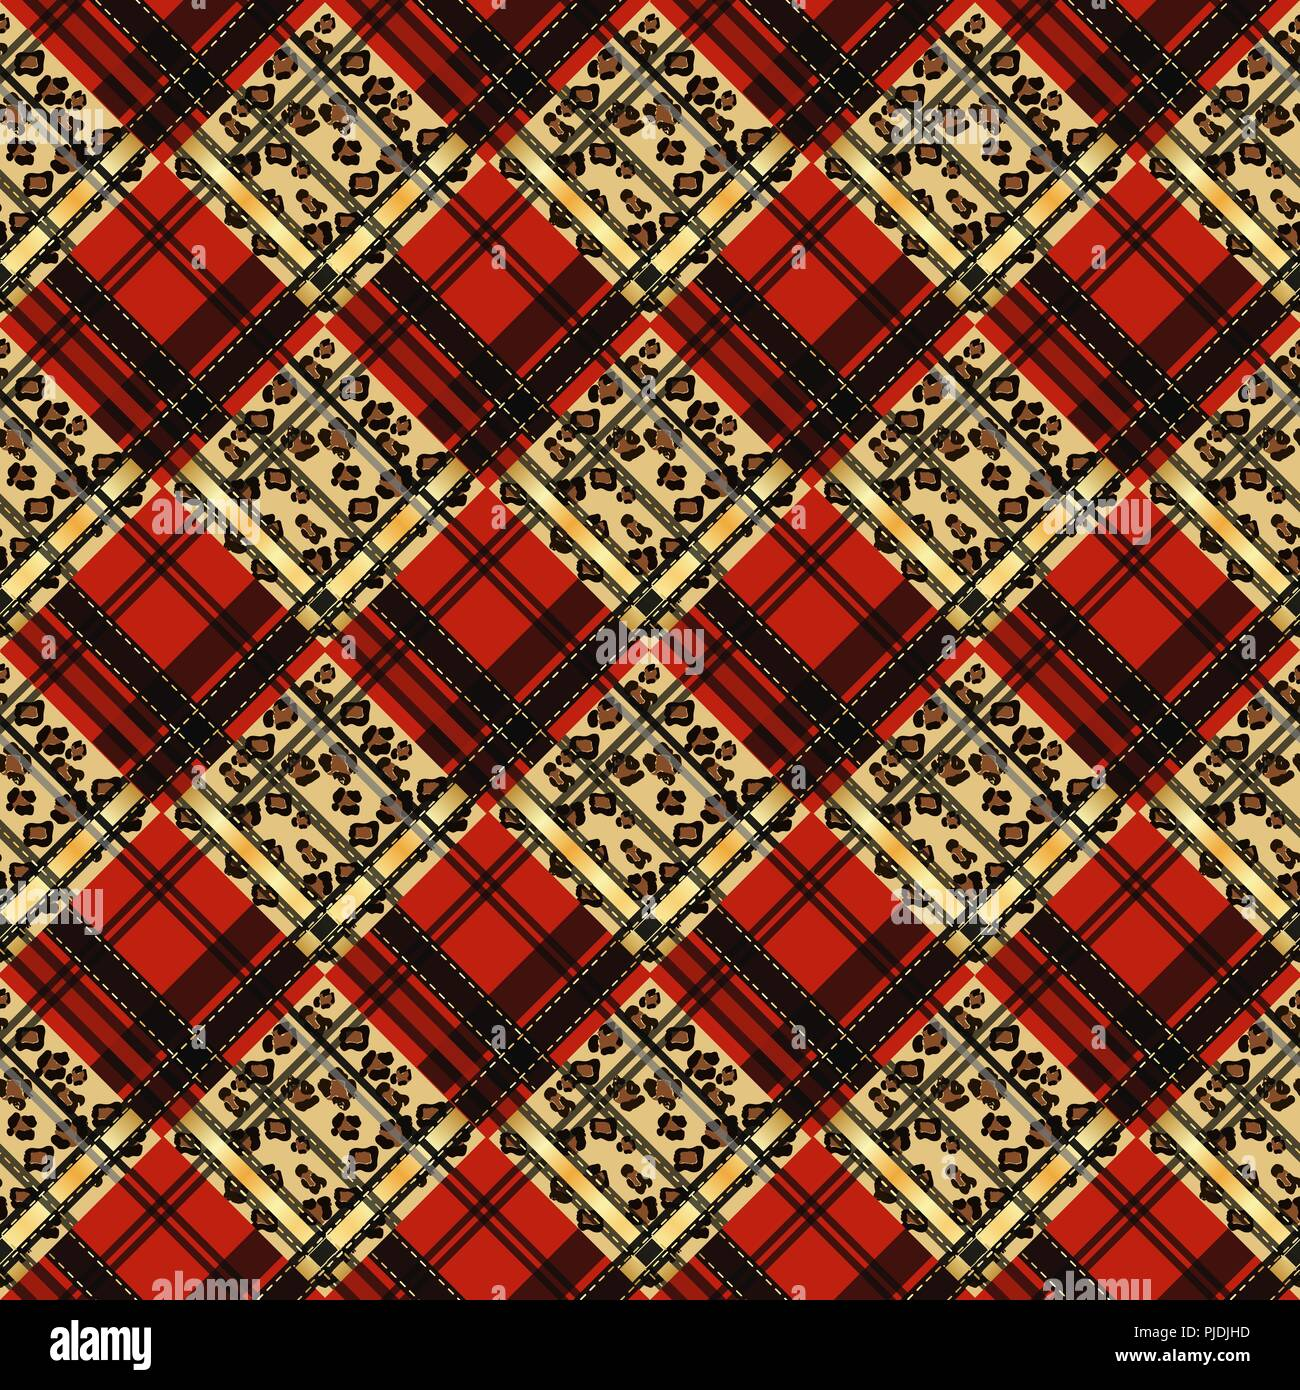 Vector illustration of colorful tartan, plaid fabric